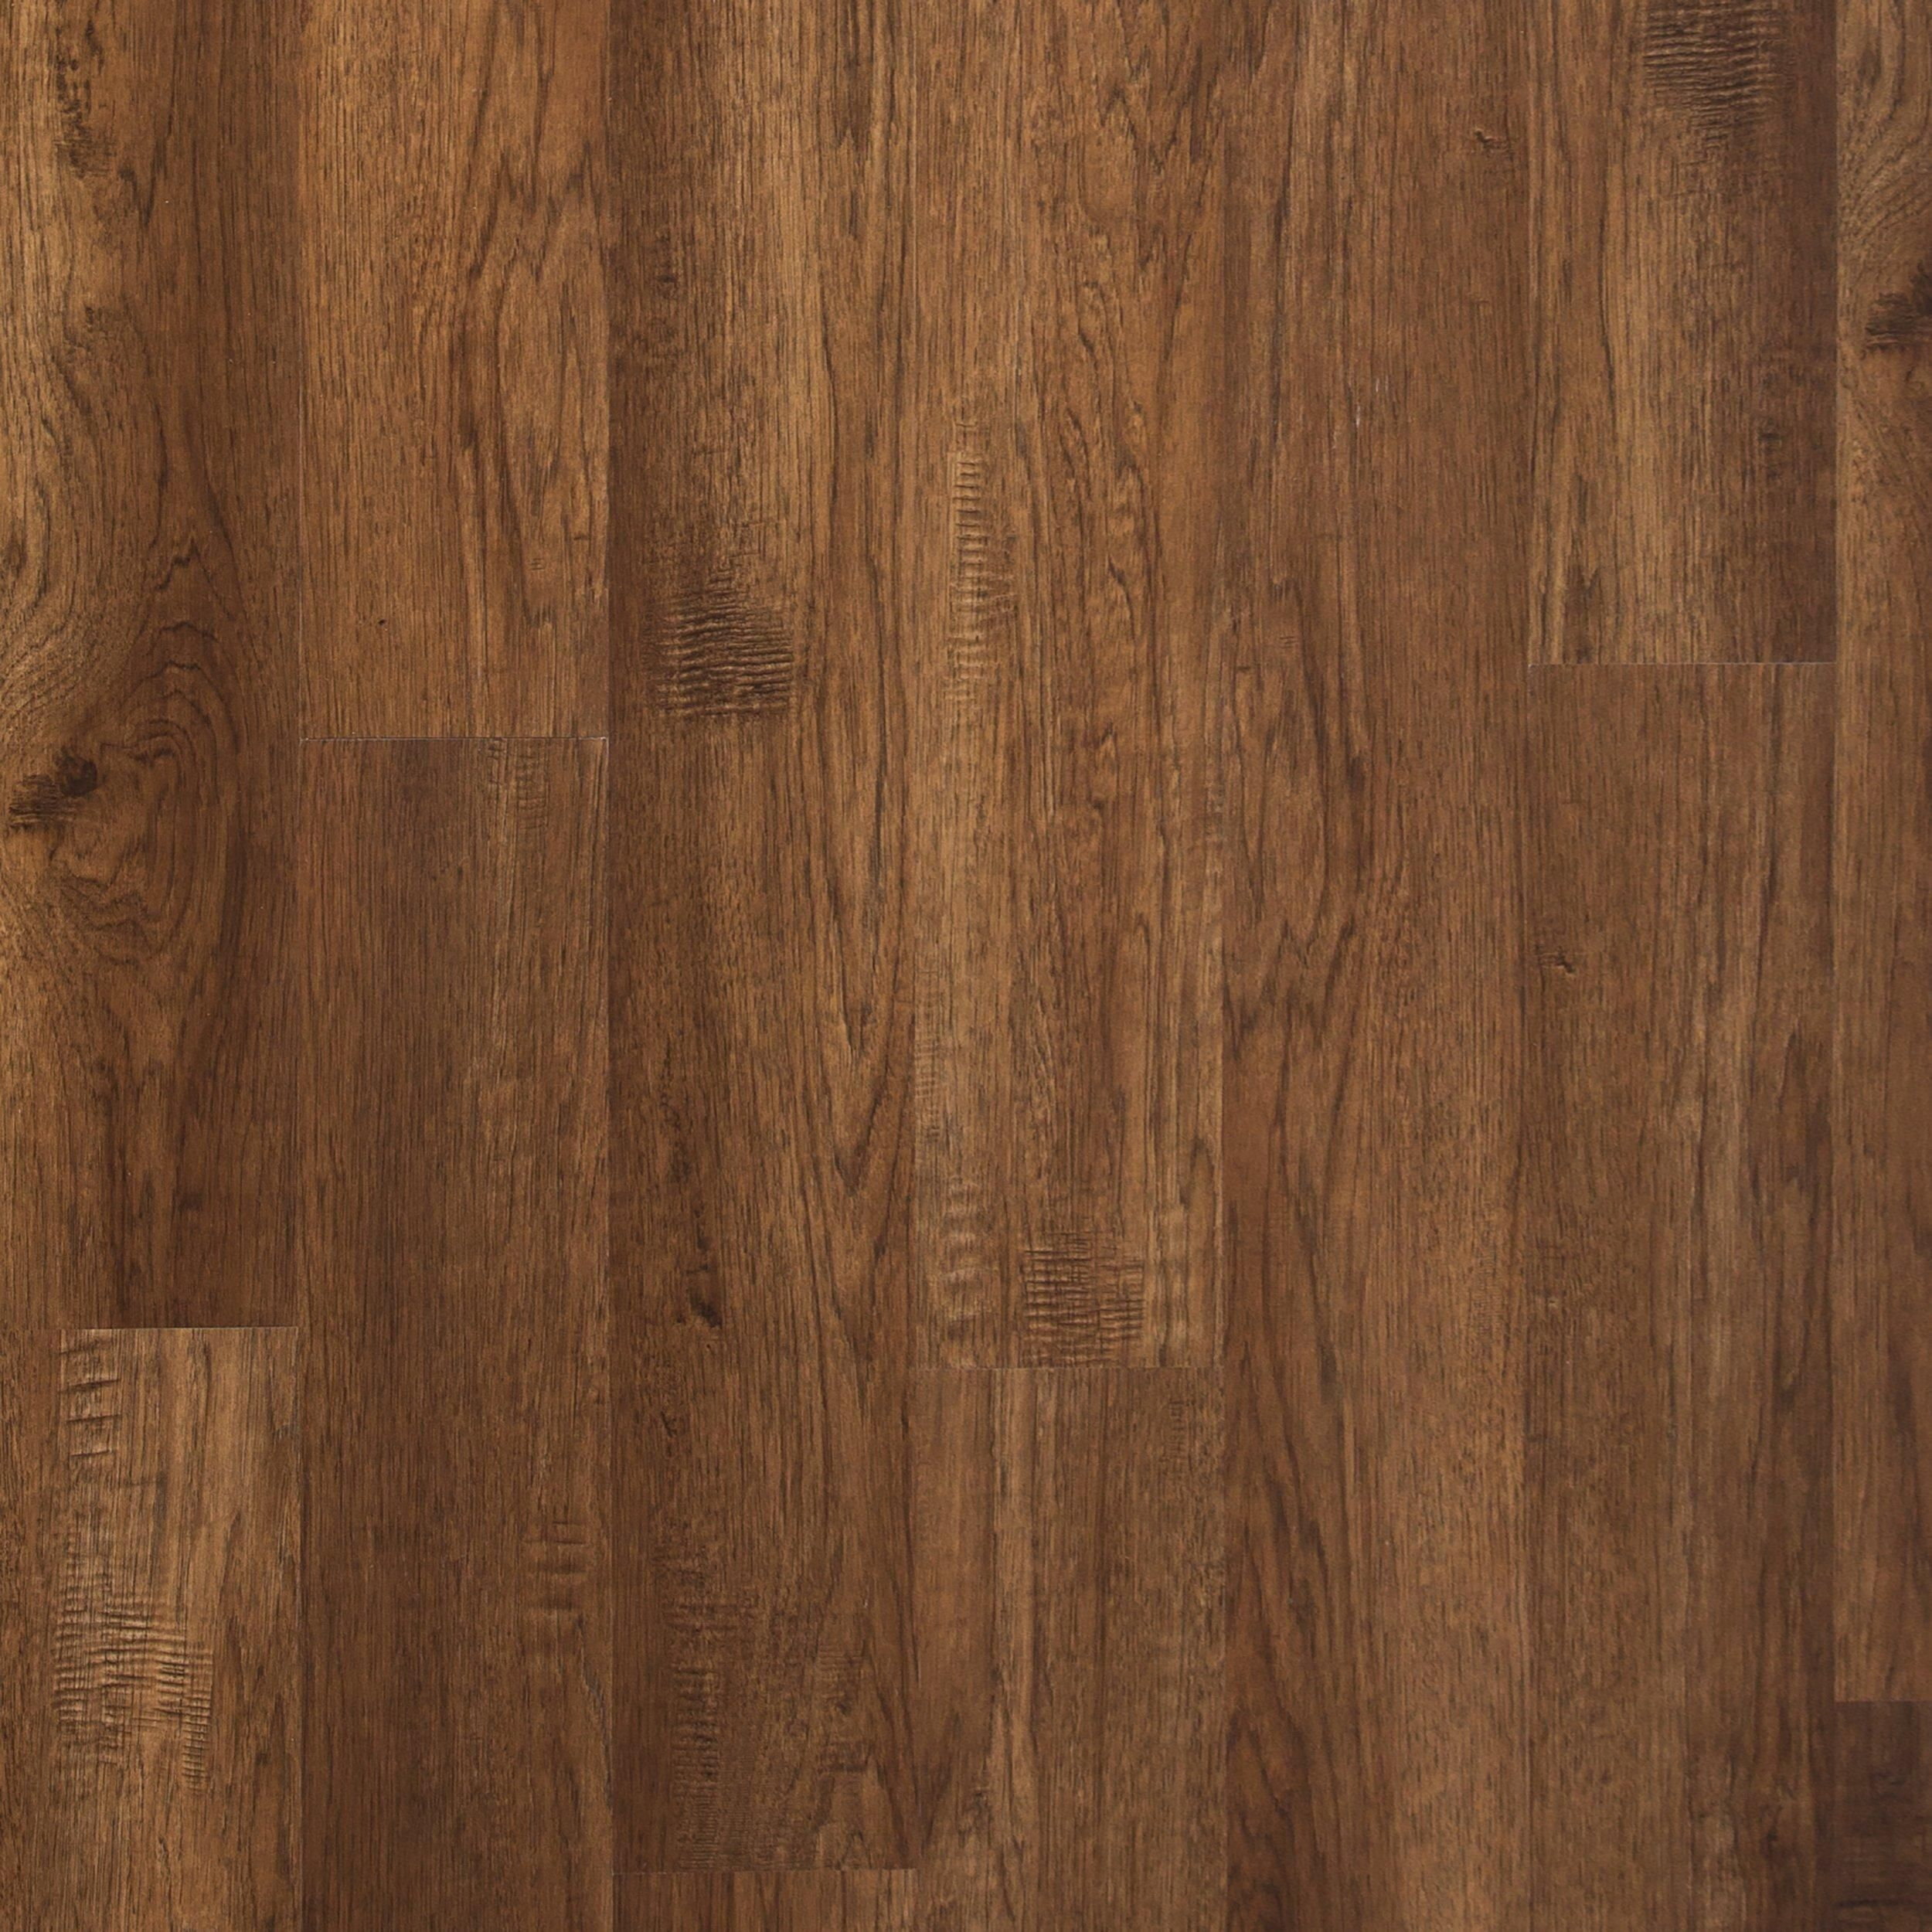 Chelsea Gunstock Rigid Core Luxury Vinyl Plank In 2020 Vinyl Plank Luxury Vinyl Plank Luxury Vinyl